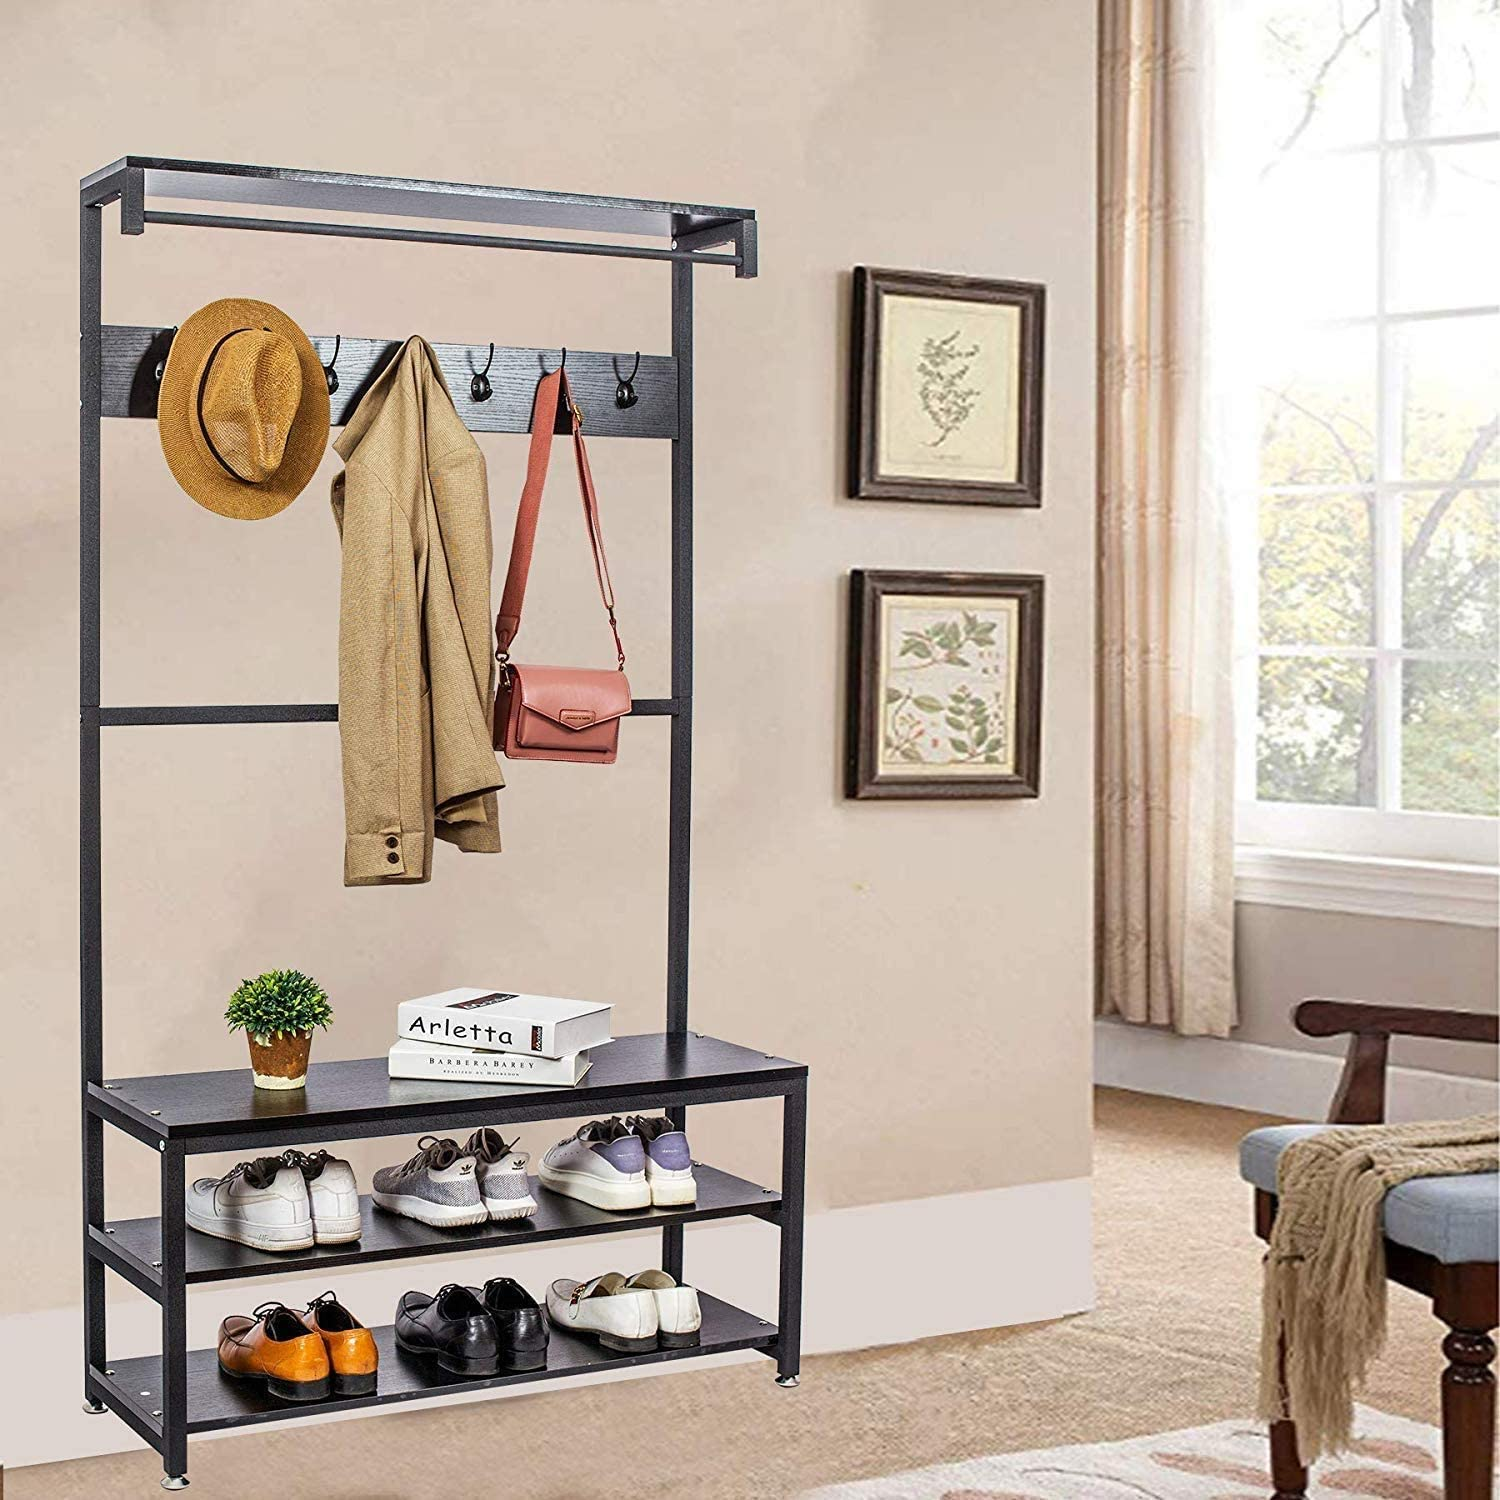 with Hooks for Garments puppykitty 3-in-1 Entryway Hall Trees Hall Furniture Vintage Metal and Wood Hall Tree with Storage Bench Shoe Coat Rack Entryway Storage Shelf Organizer